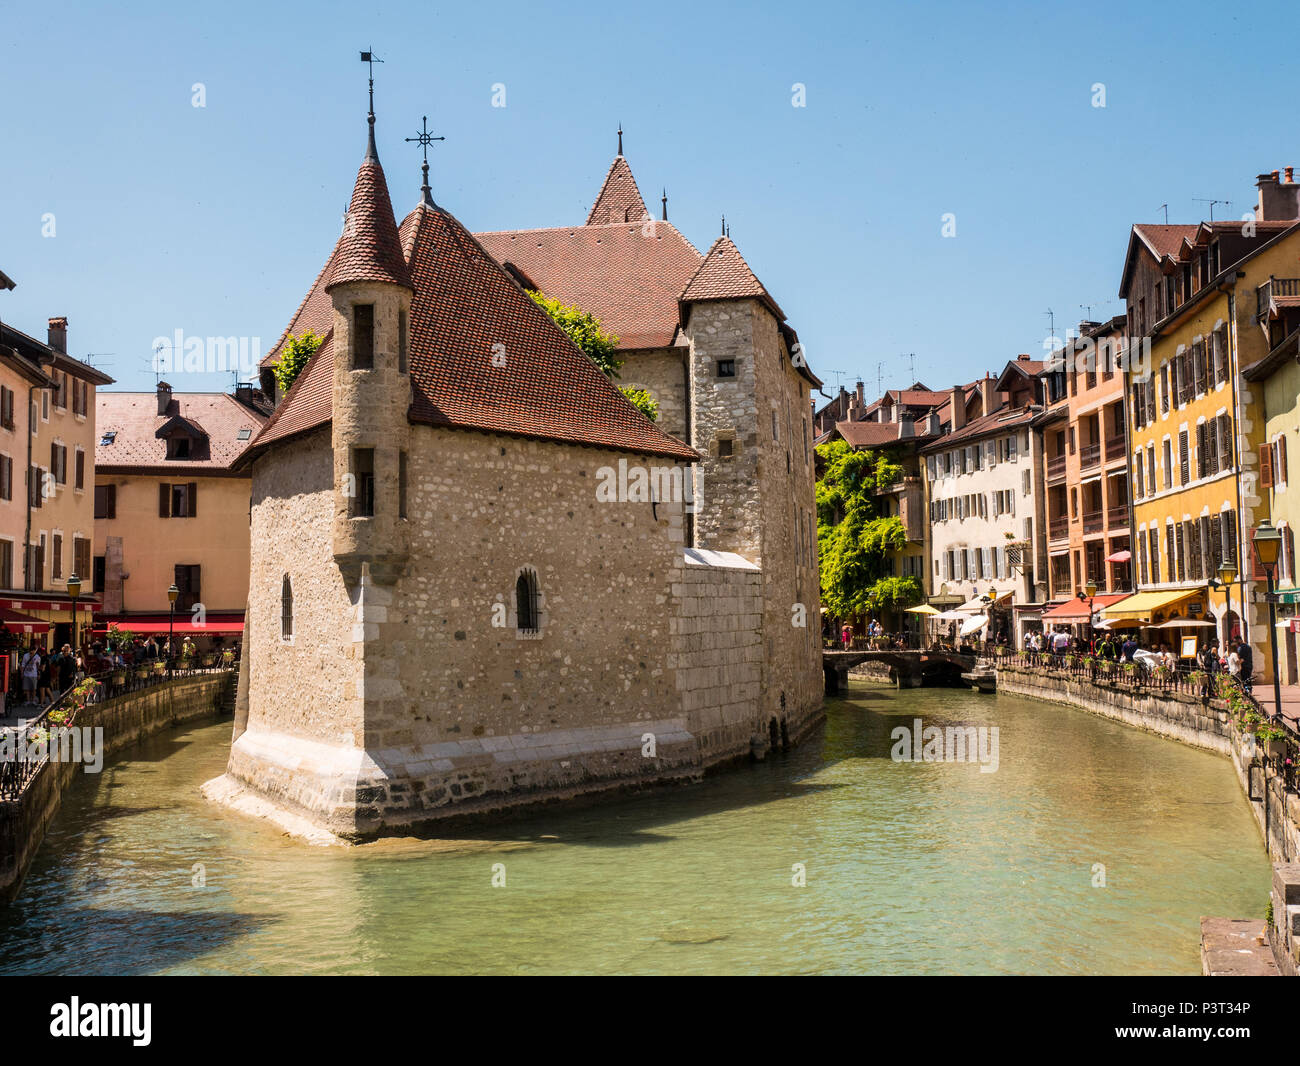 Cityscape with ancient prison now museum in Old Town of Annecy. France - Stock Image